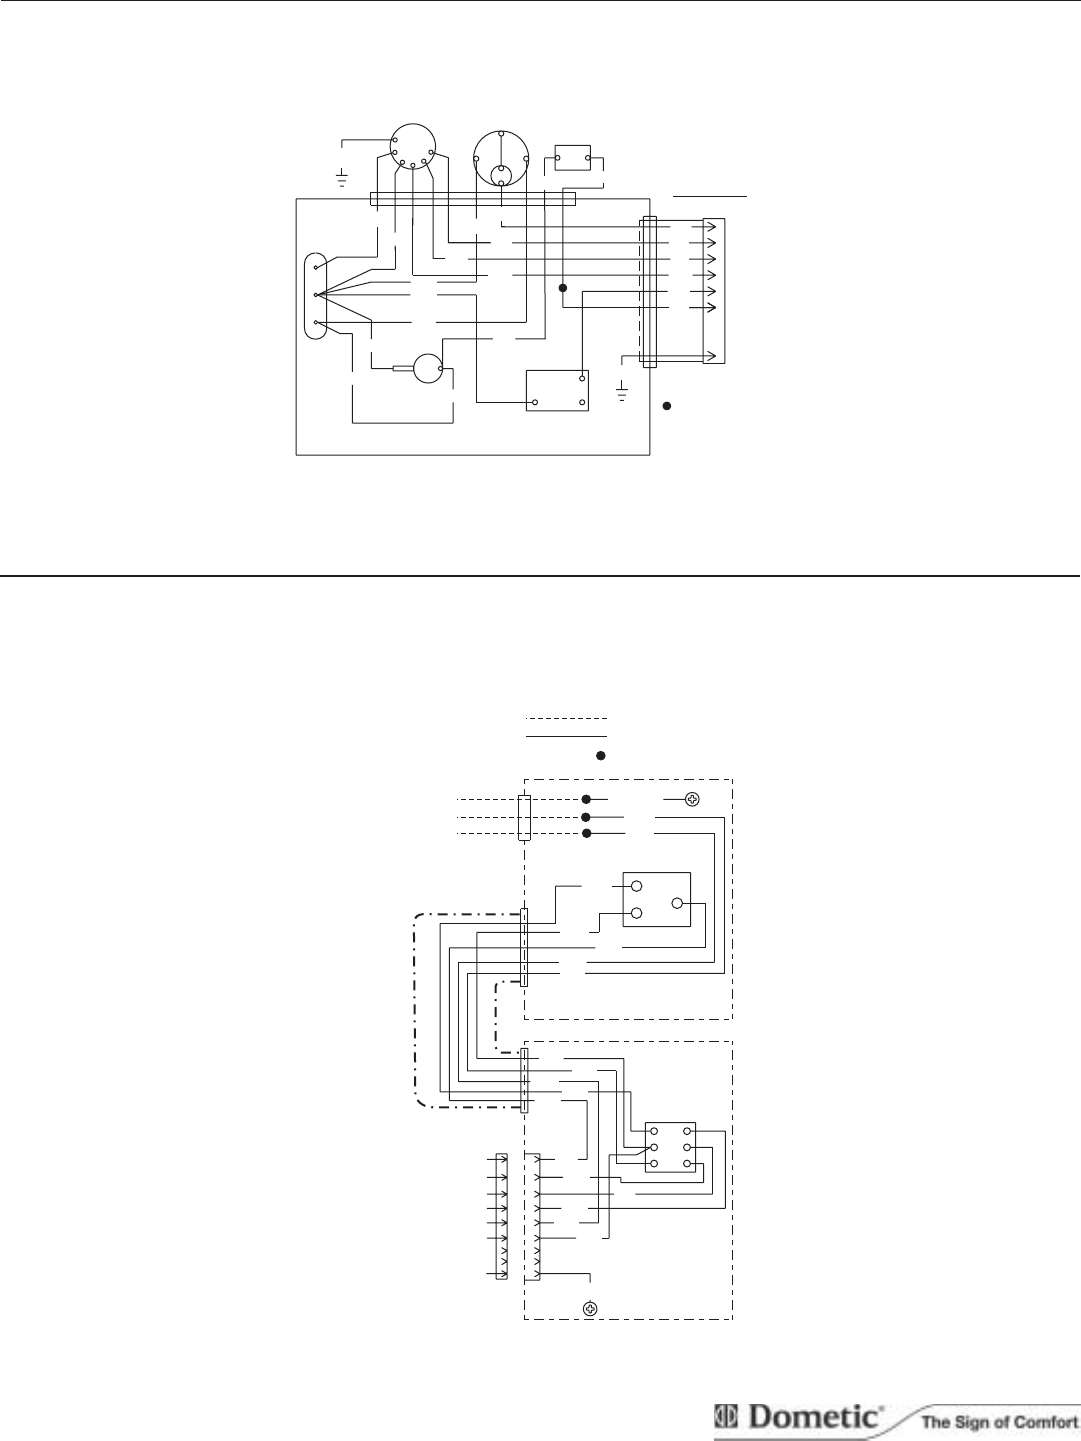 Duo therm wiring diagram for thermostat jzgreentown